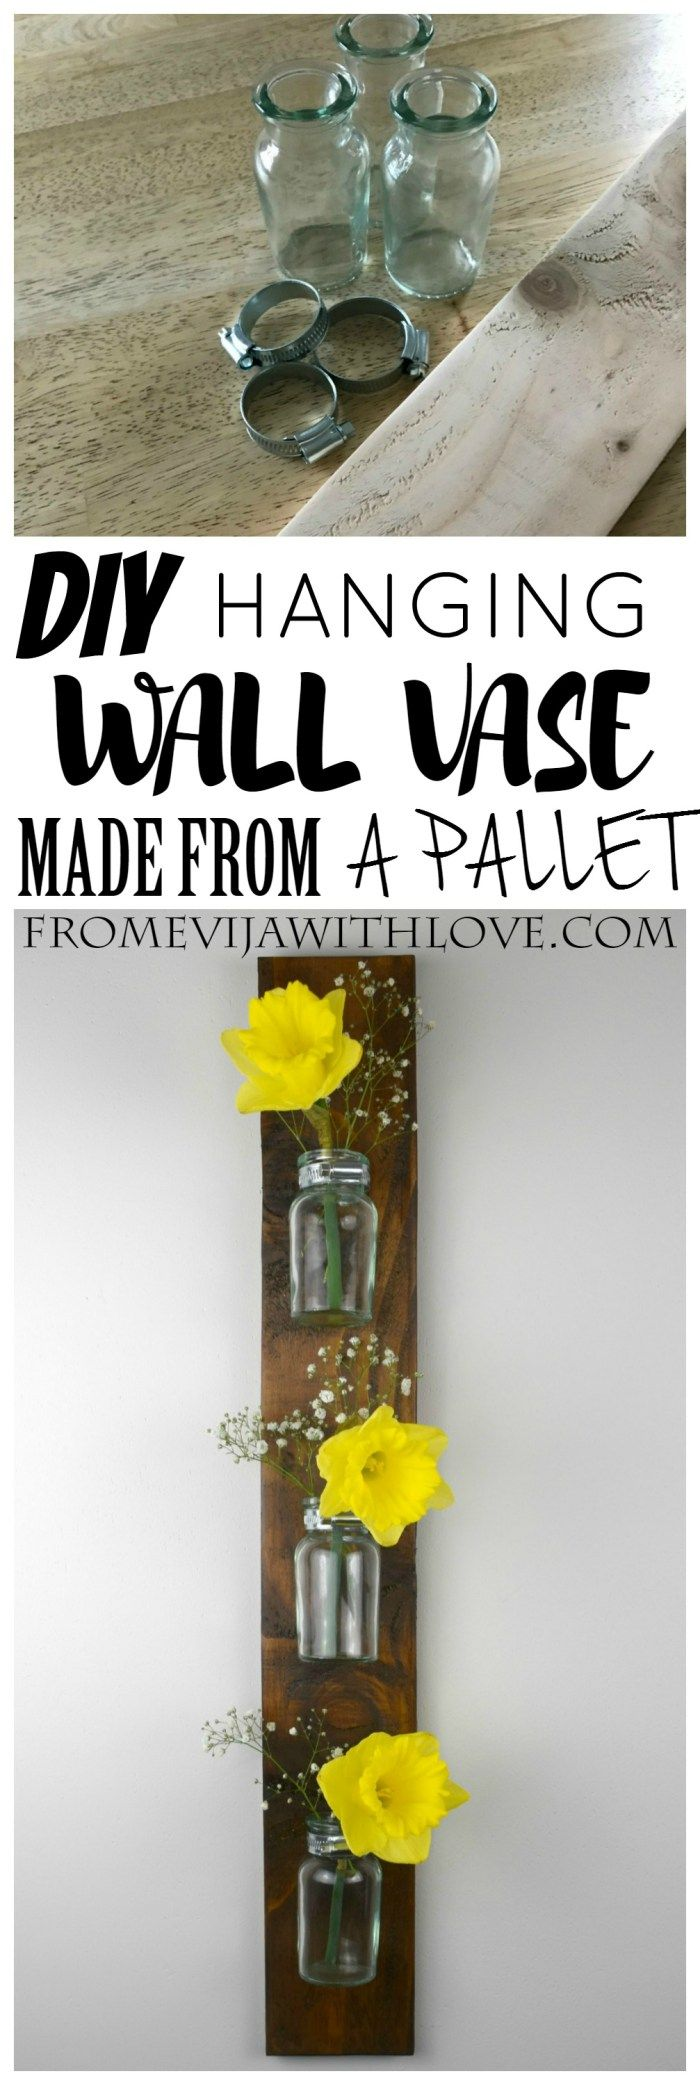 Making a Hanging Wall Vase from a Pallet - From Evija with Love